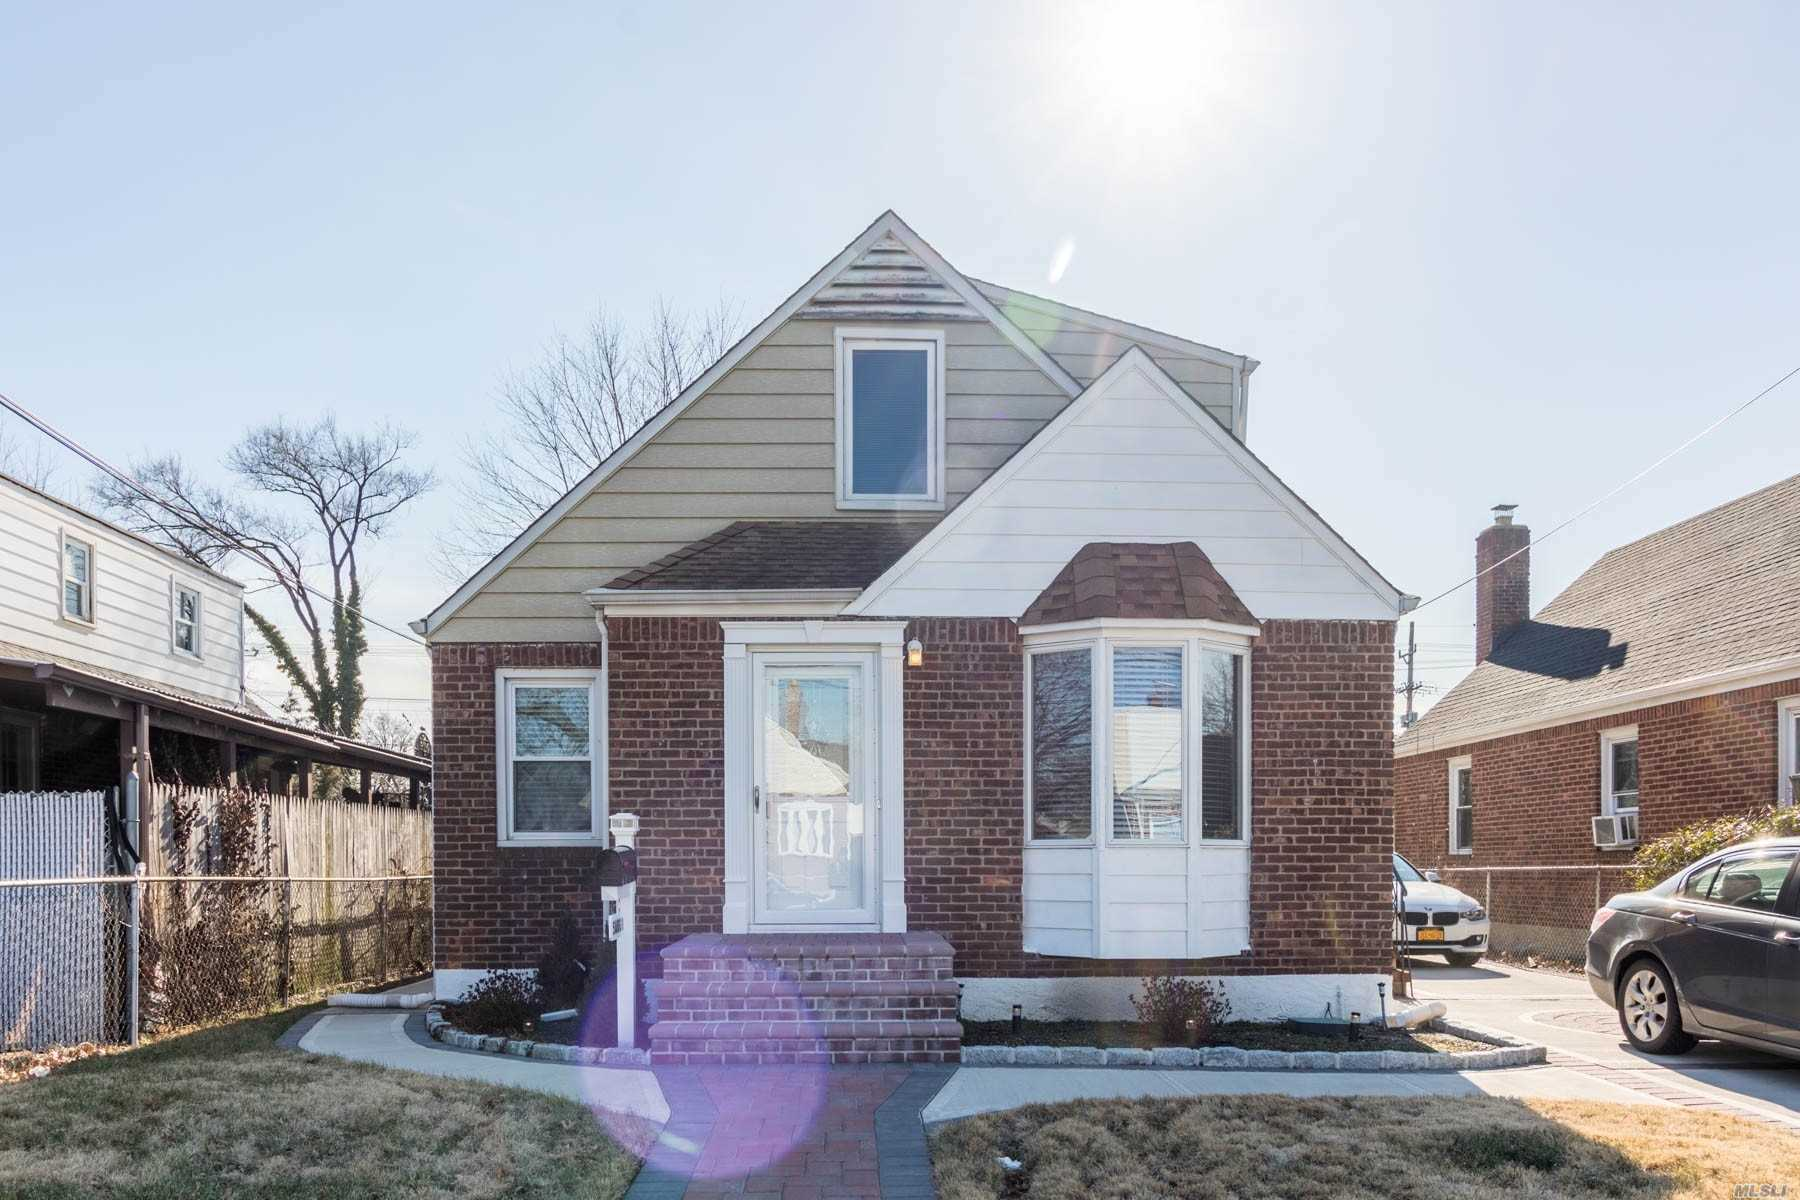 Beautiful Cape With 4 Br, Newly Renovated Kitchen, Bath Rooms, Living Room,  Very Large Lot Can Build. Nice Home Great Location. This Is A Lovely One Family Home And Spacious.